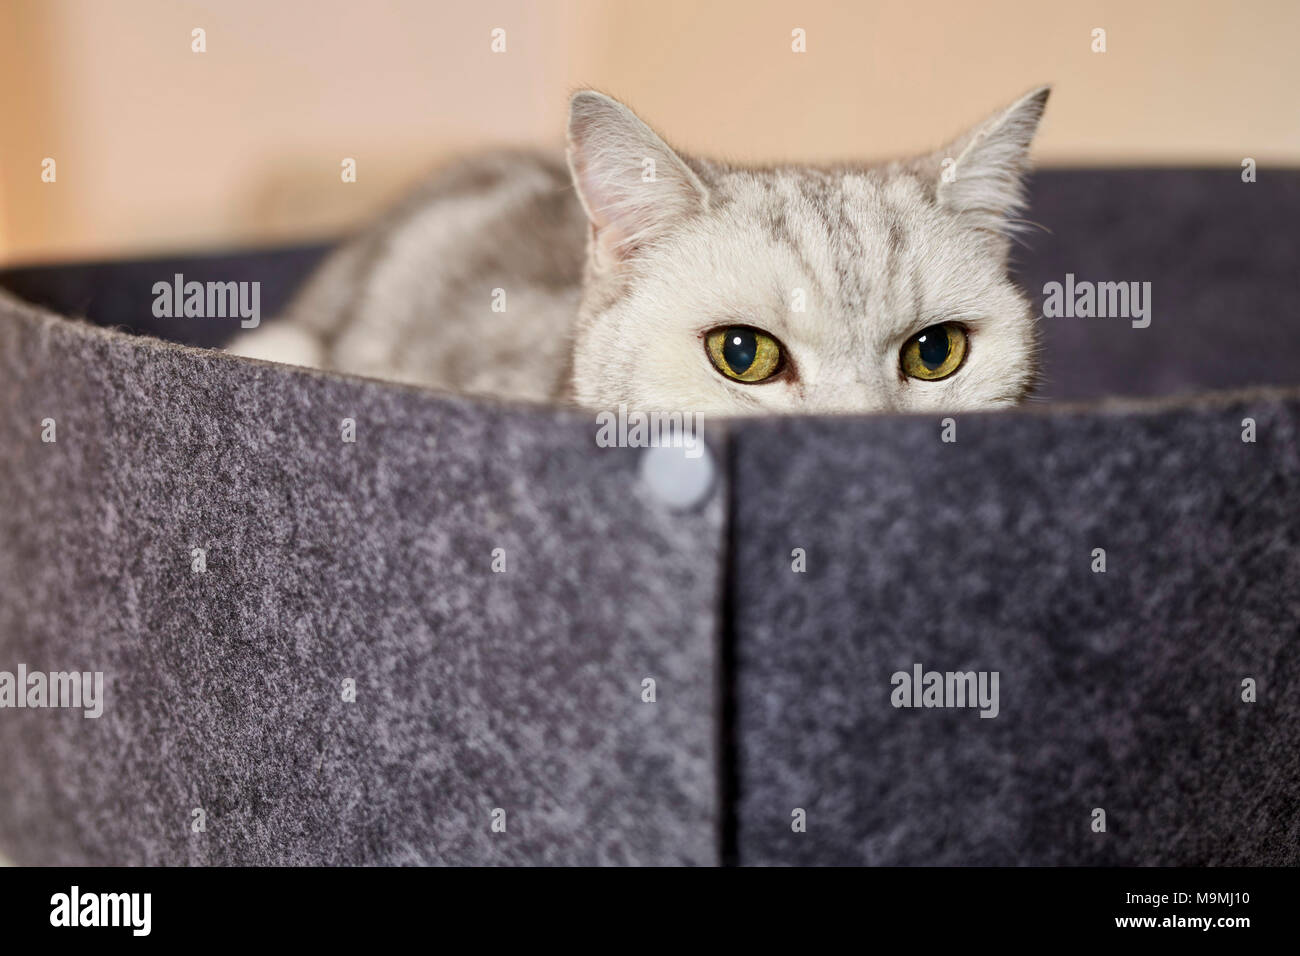 British Shorthair cat. Tabby adult lying pet bed made of felt. Germany - Stock Image